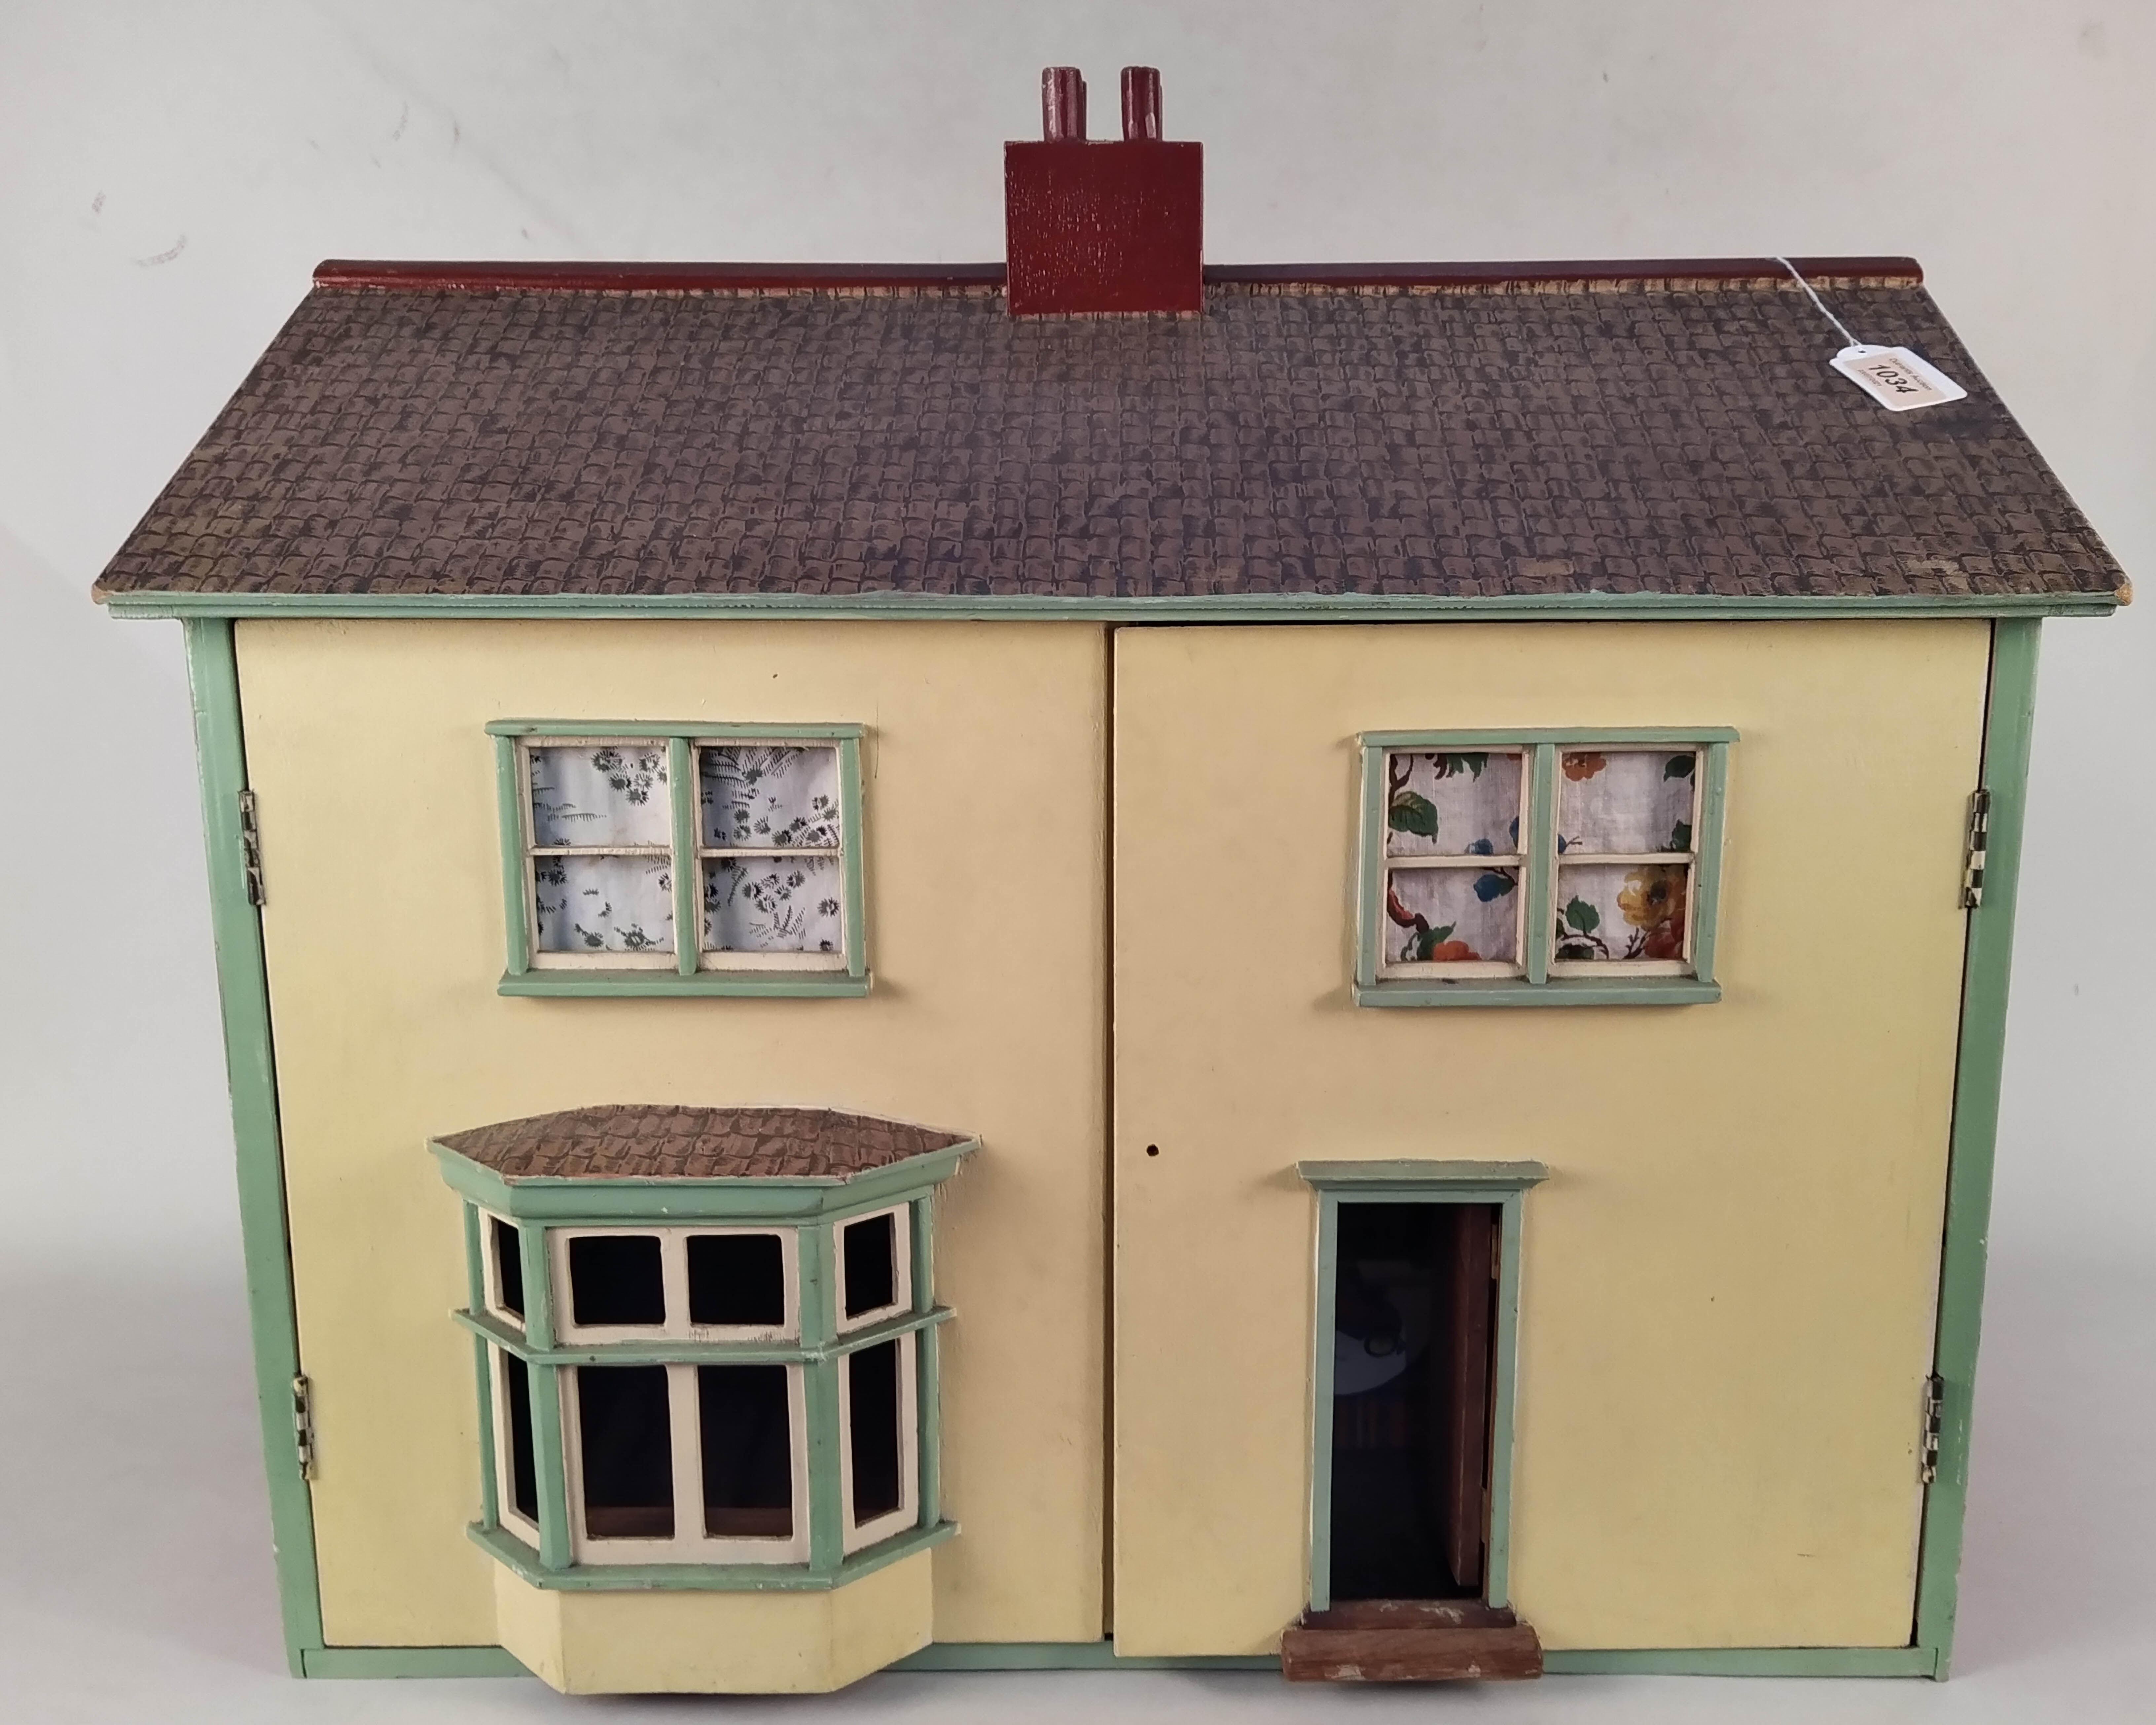 A vintage dolls house plus a tub of dolls house furniture,